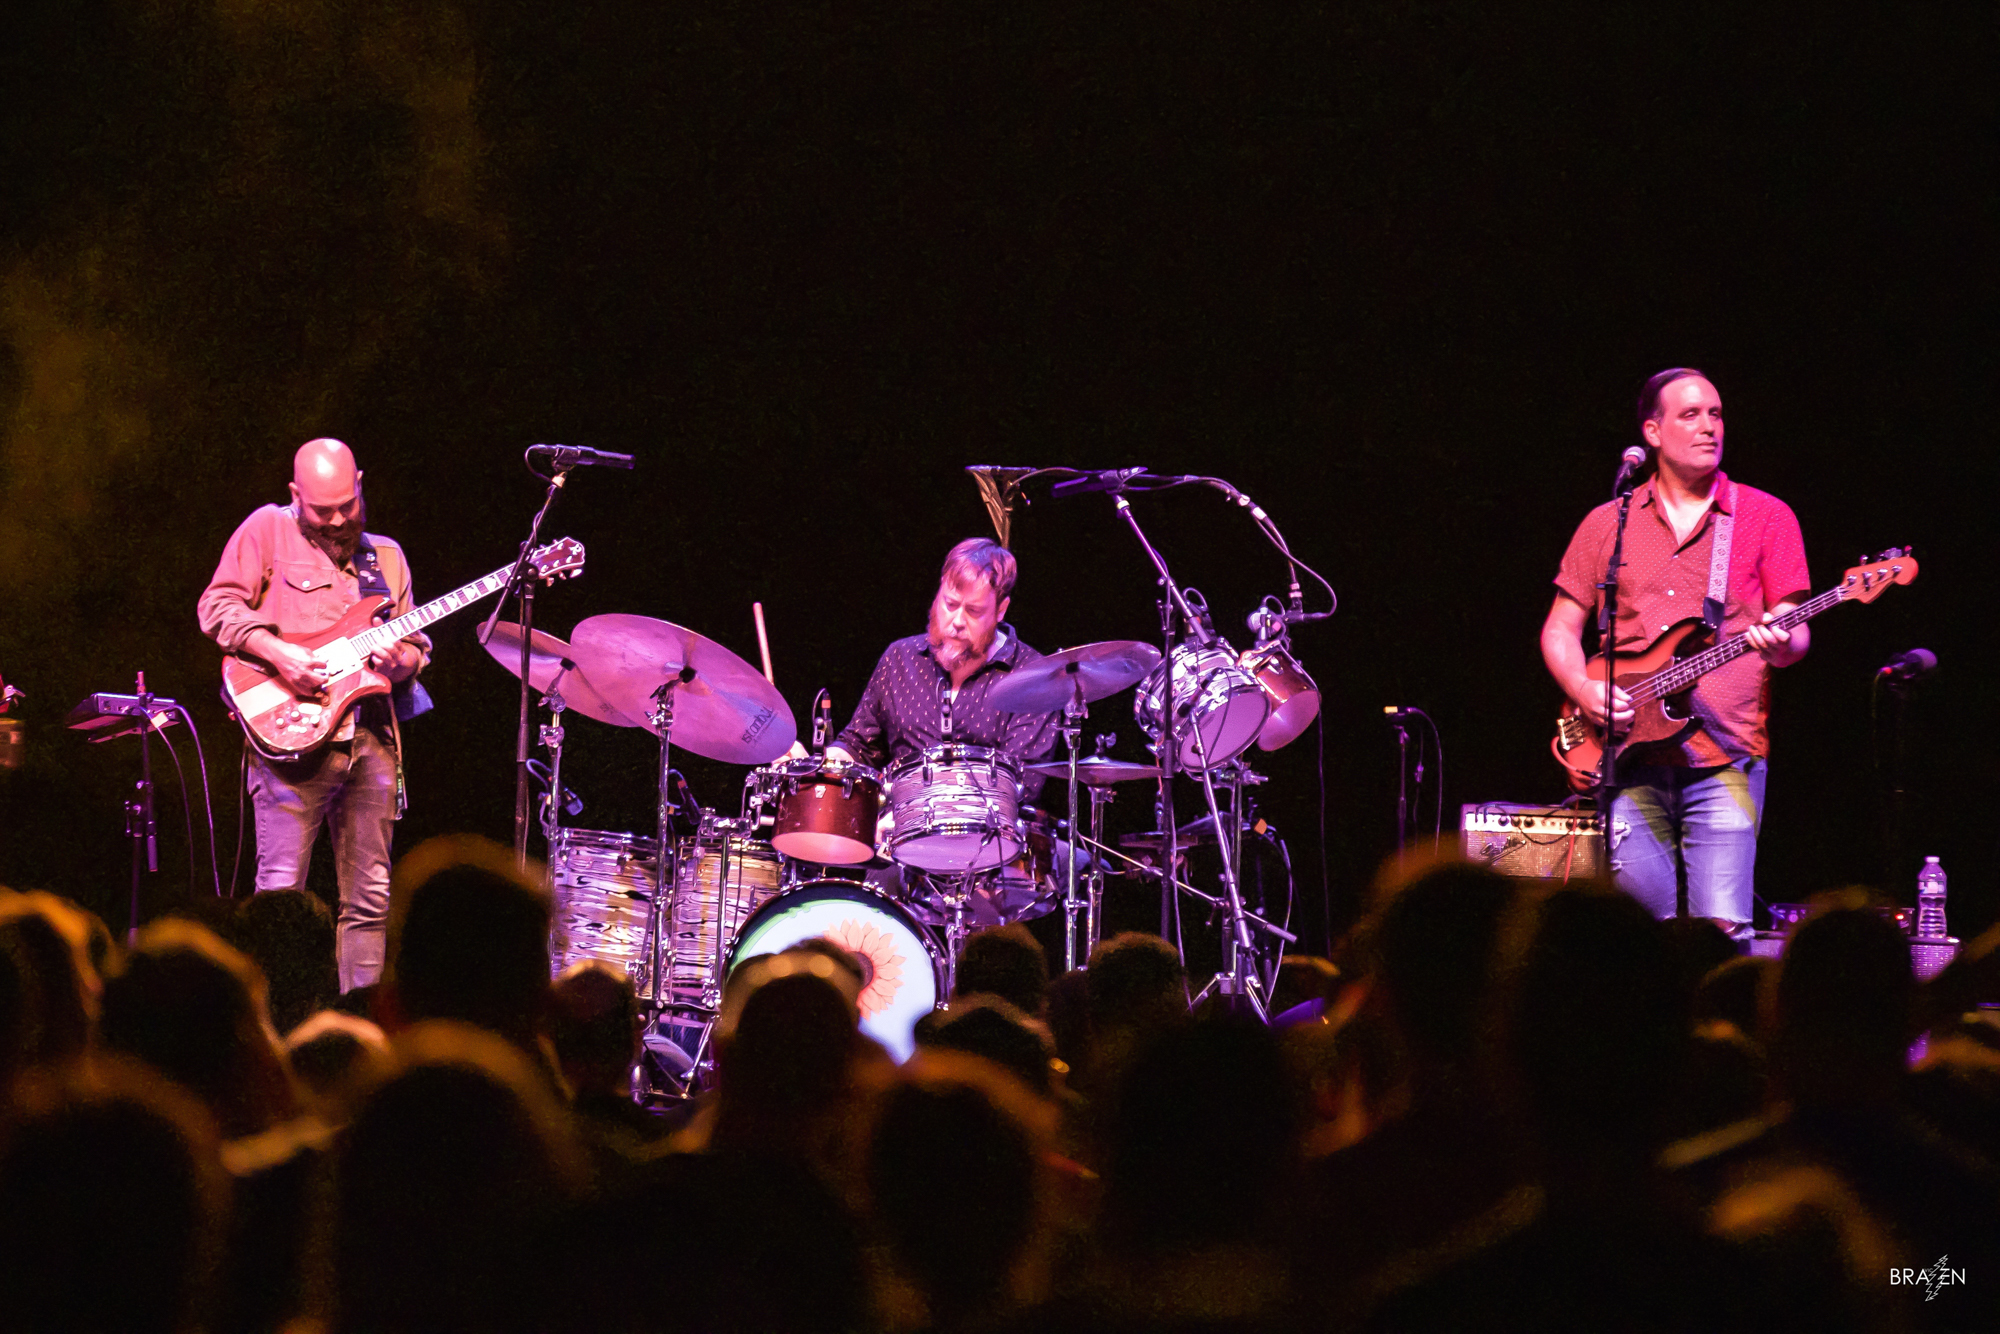 GALLERY: Joe Russo's Almost Dead at the Leader Bank Pavilion in Boston, MA